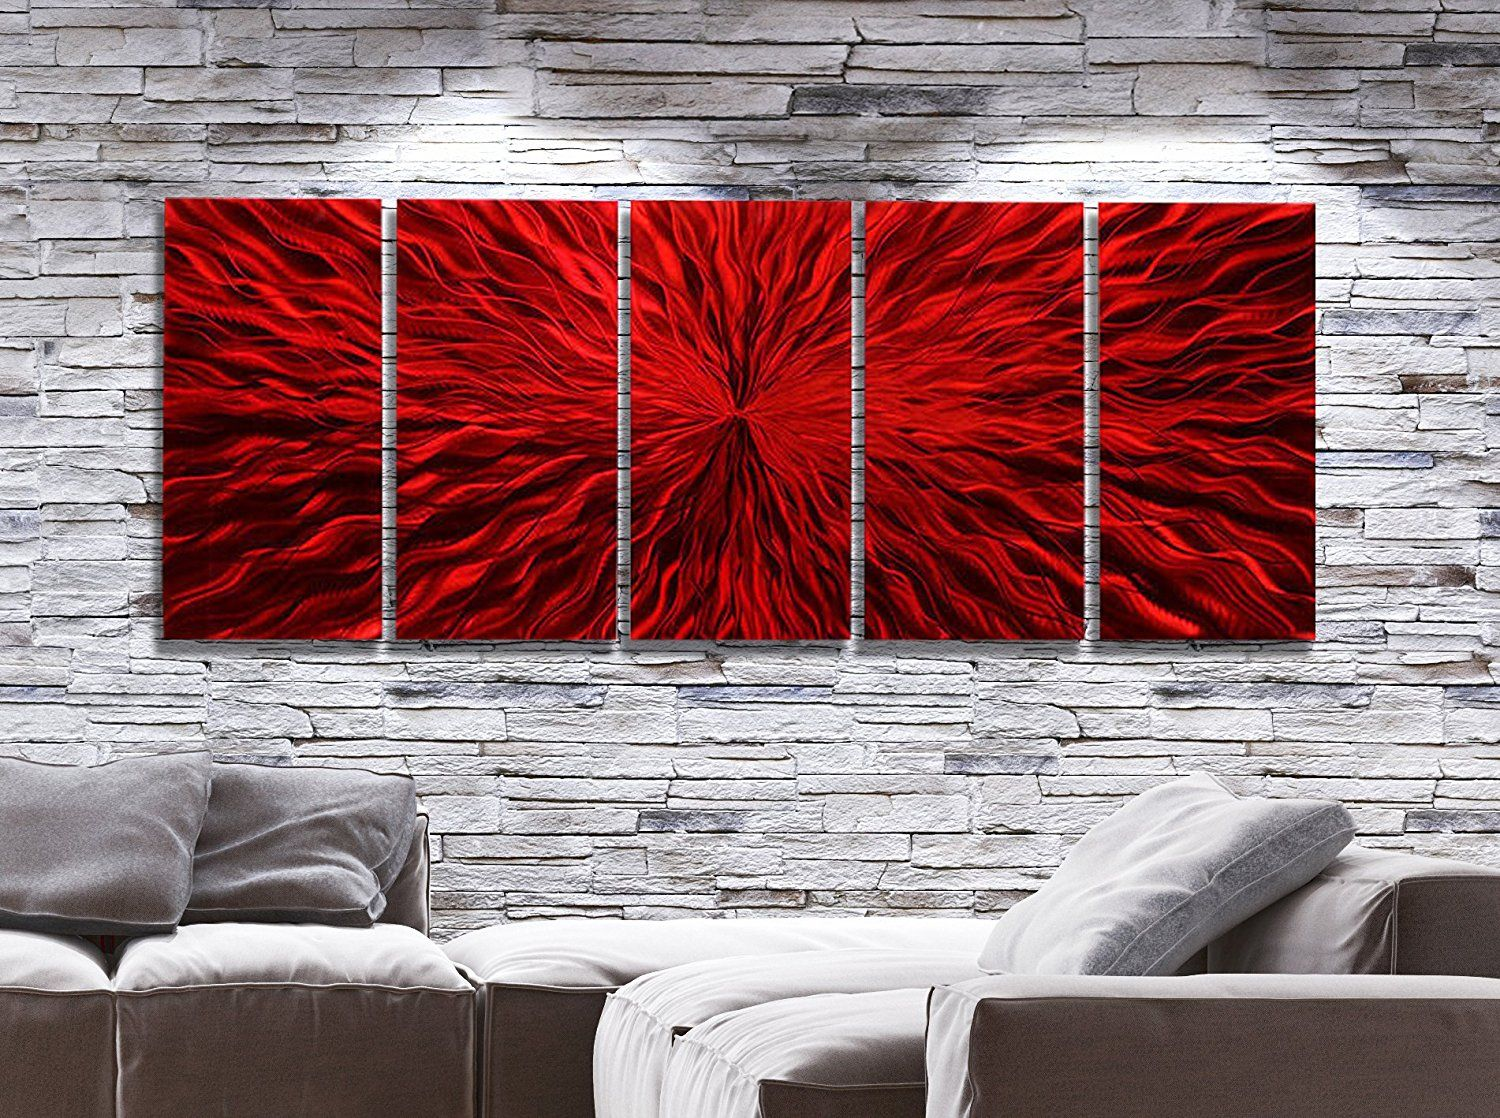 Oversized vibrant fusion of red jewel tone abstract contemporary